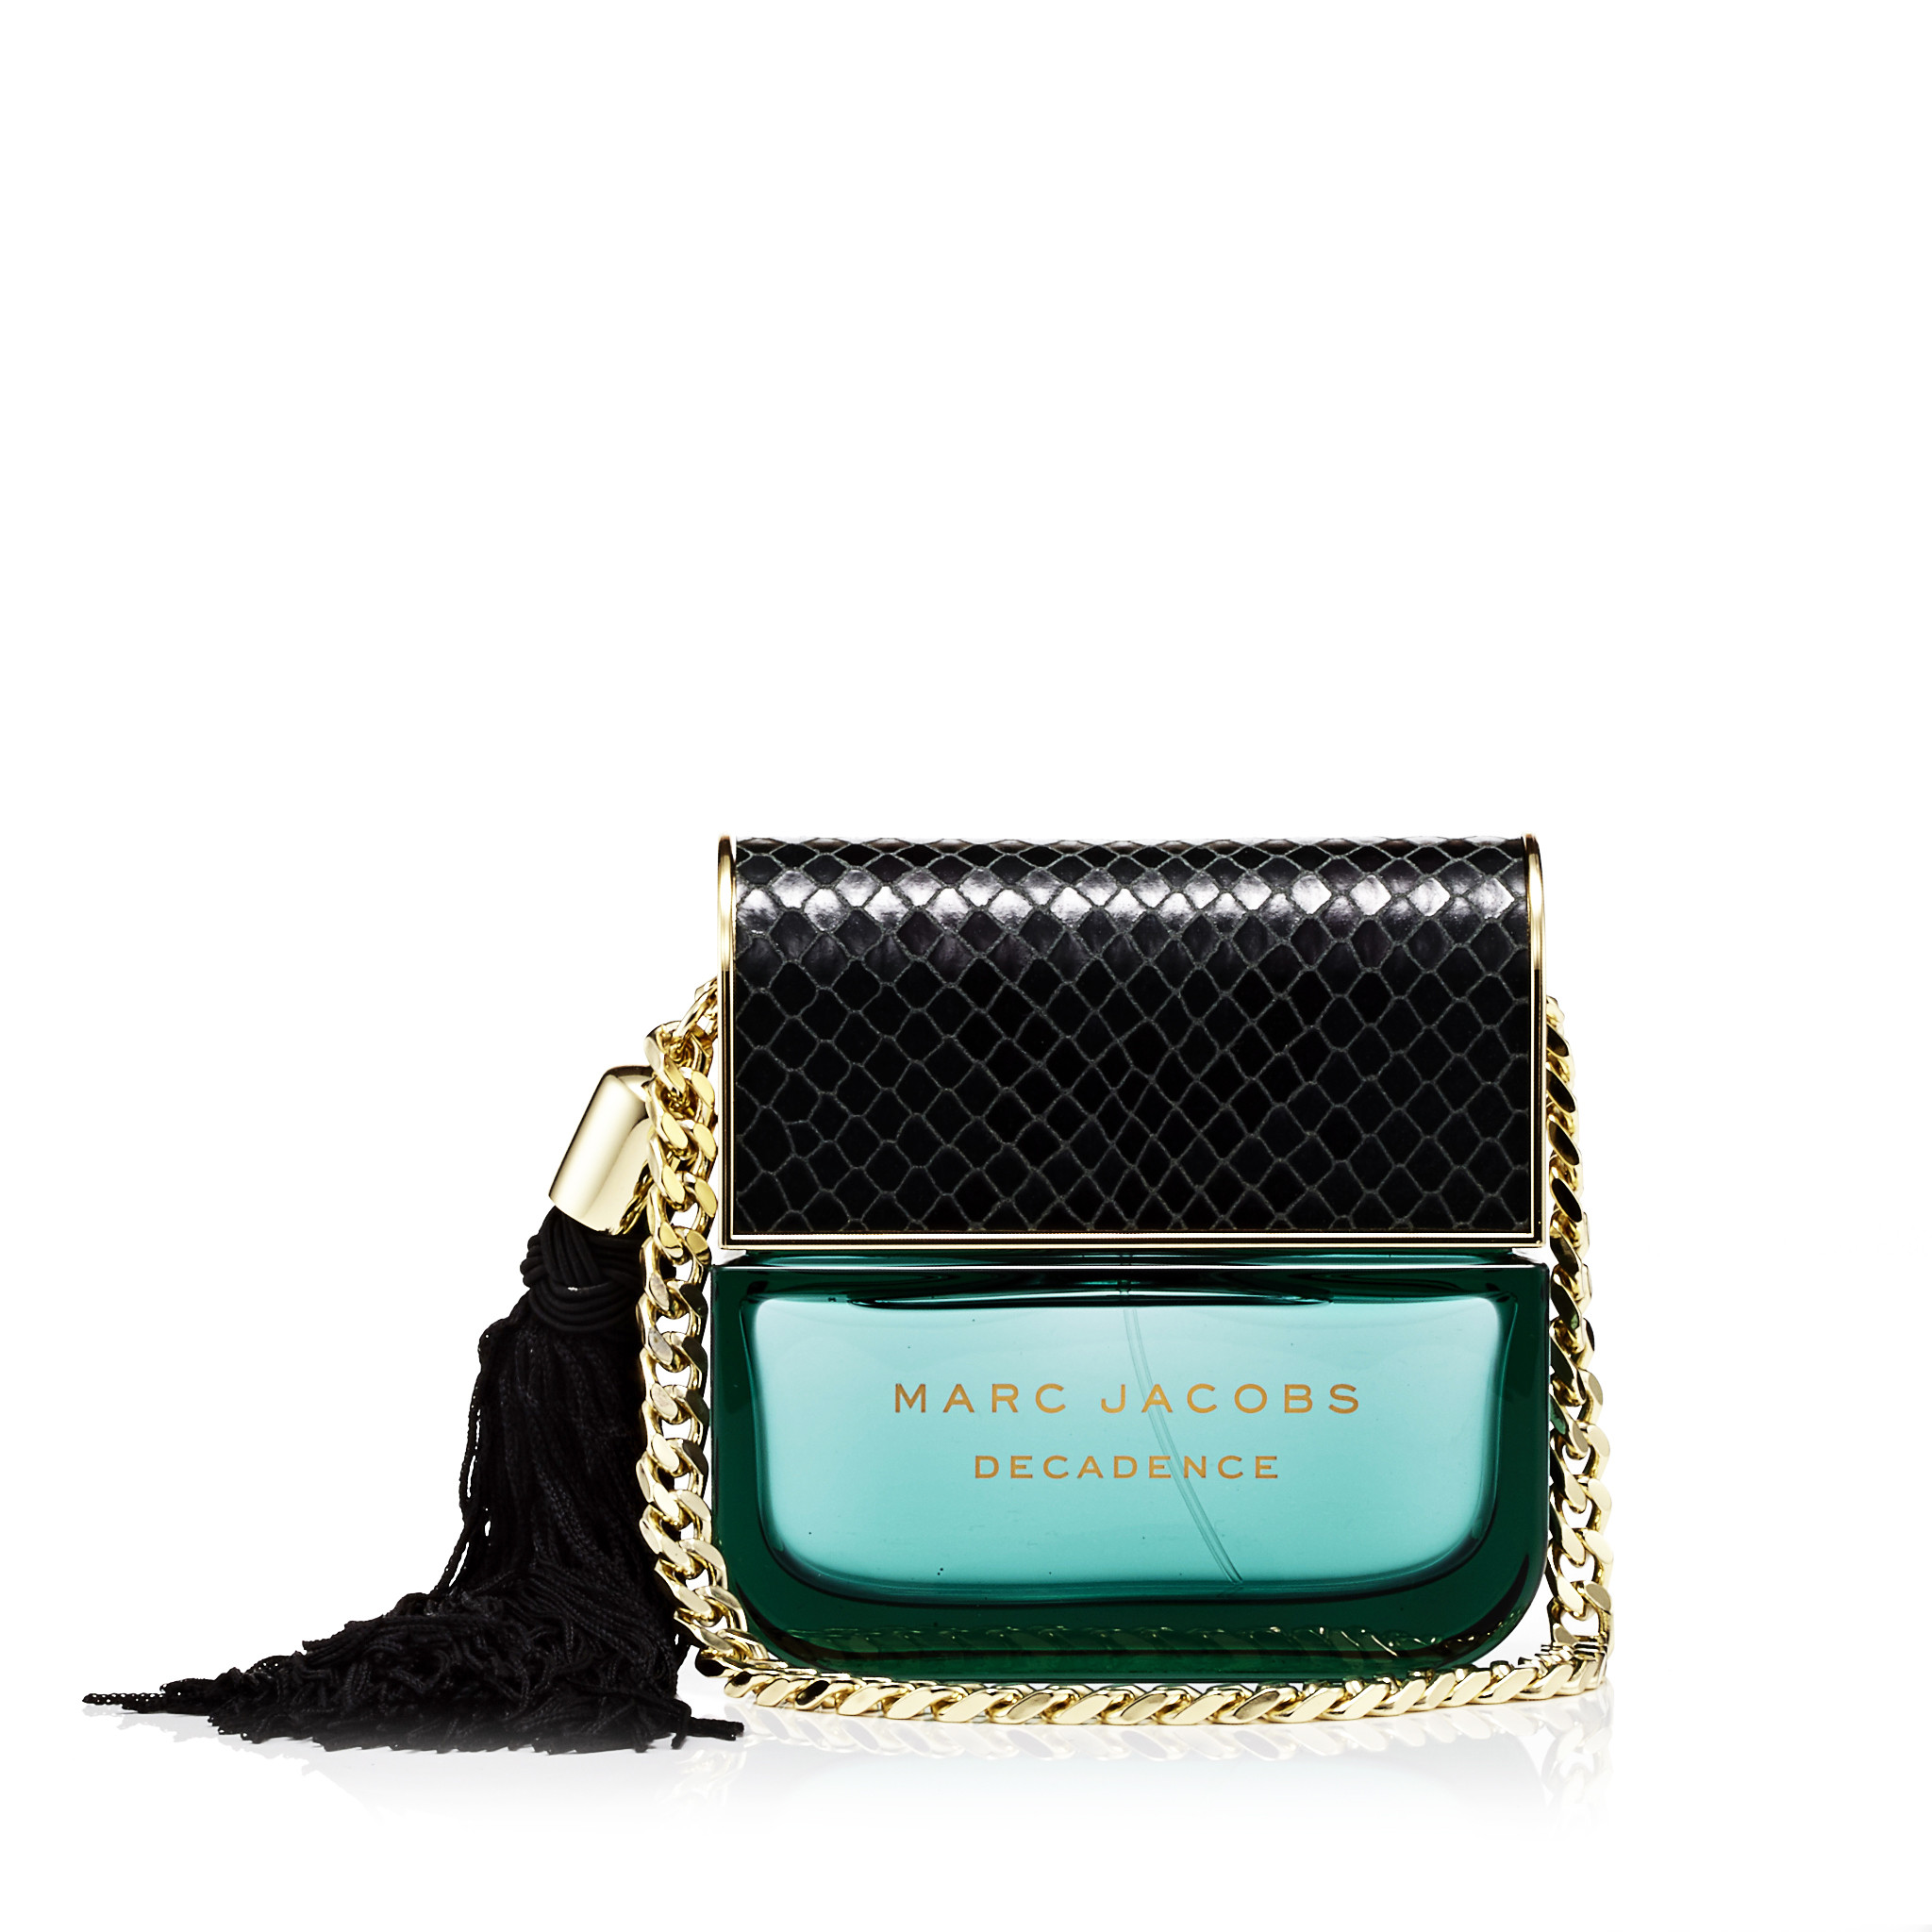 Marc-Jacobs-Decadence-Womens-Eau-de-Parfum-EDP-S-3.4-oz.-Best-Price-Fragrance-Parfume-FragranceOutlet.com-Main.jpg